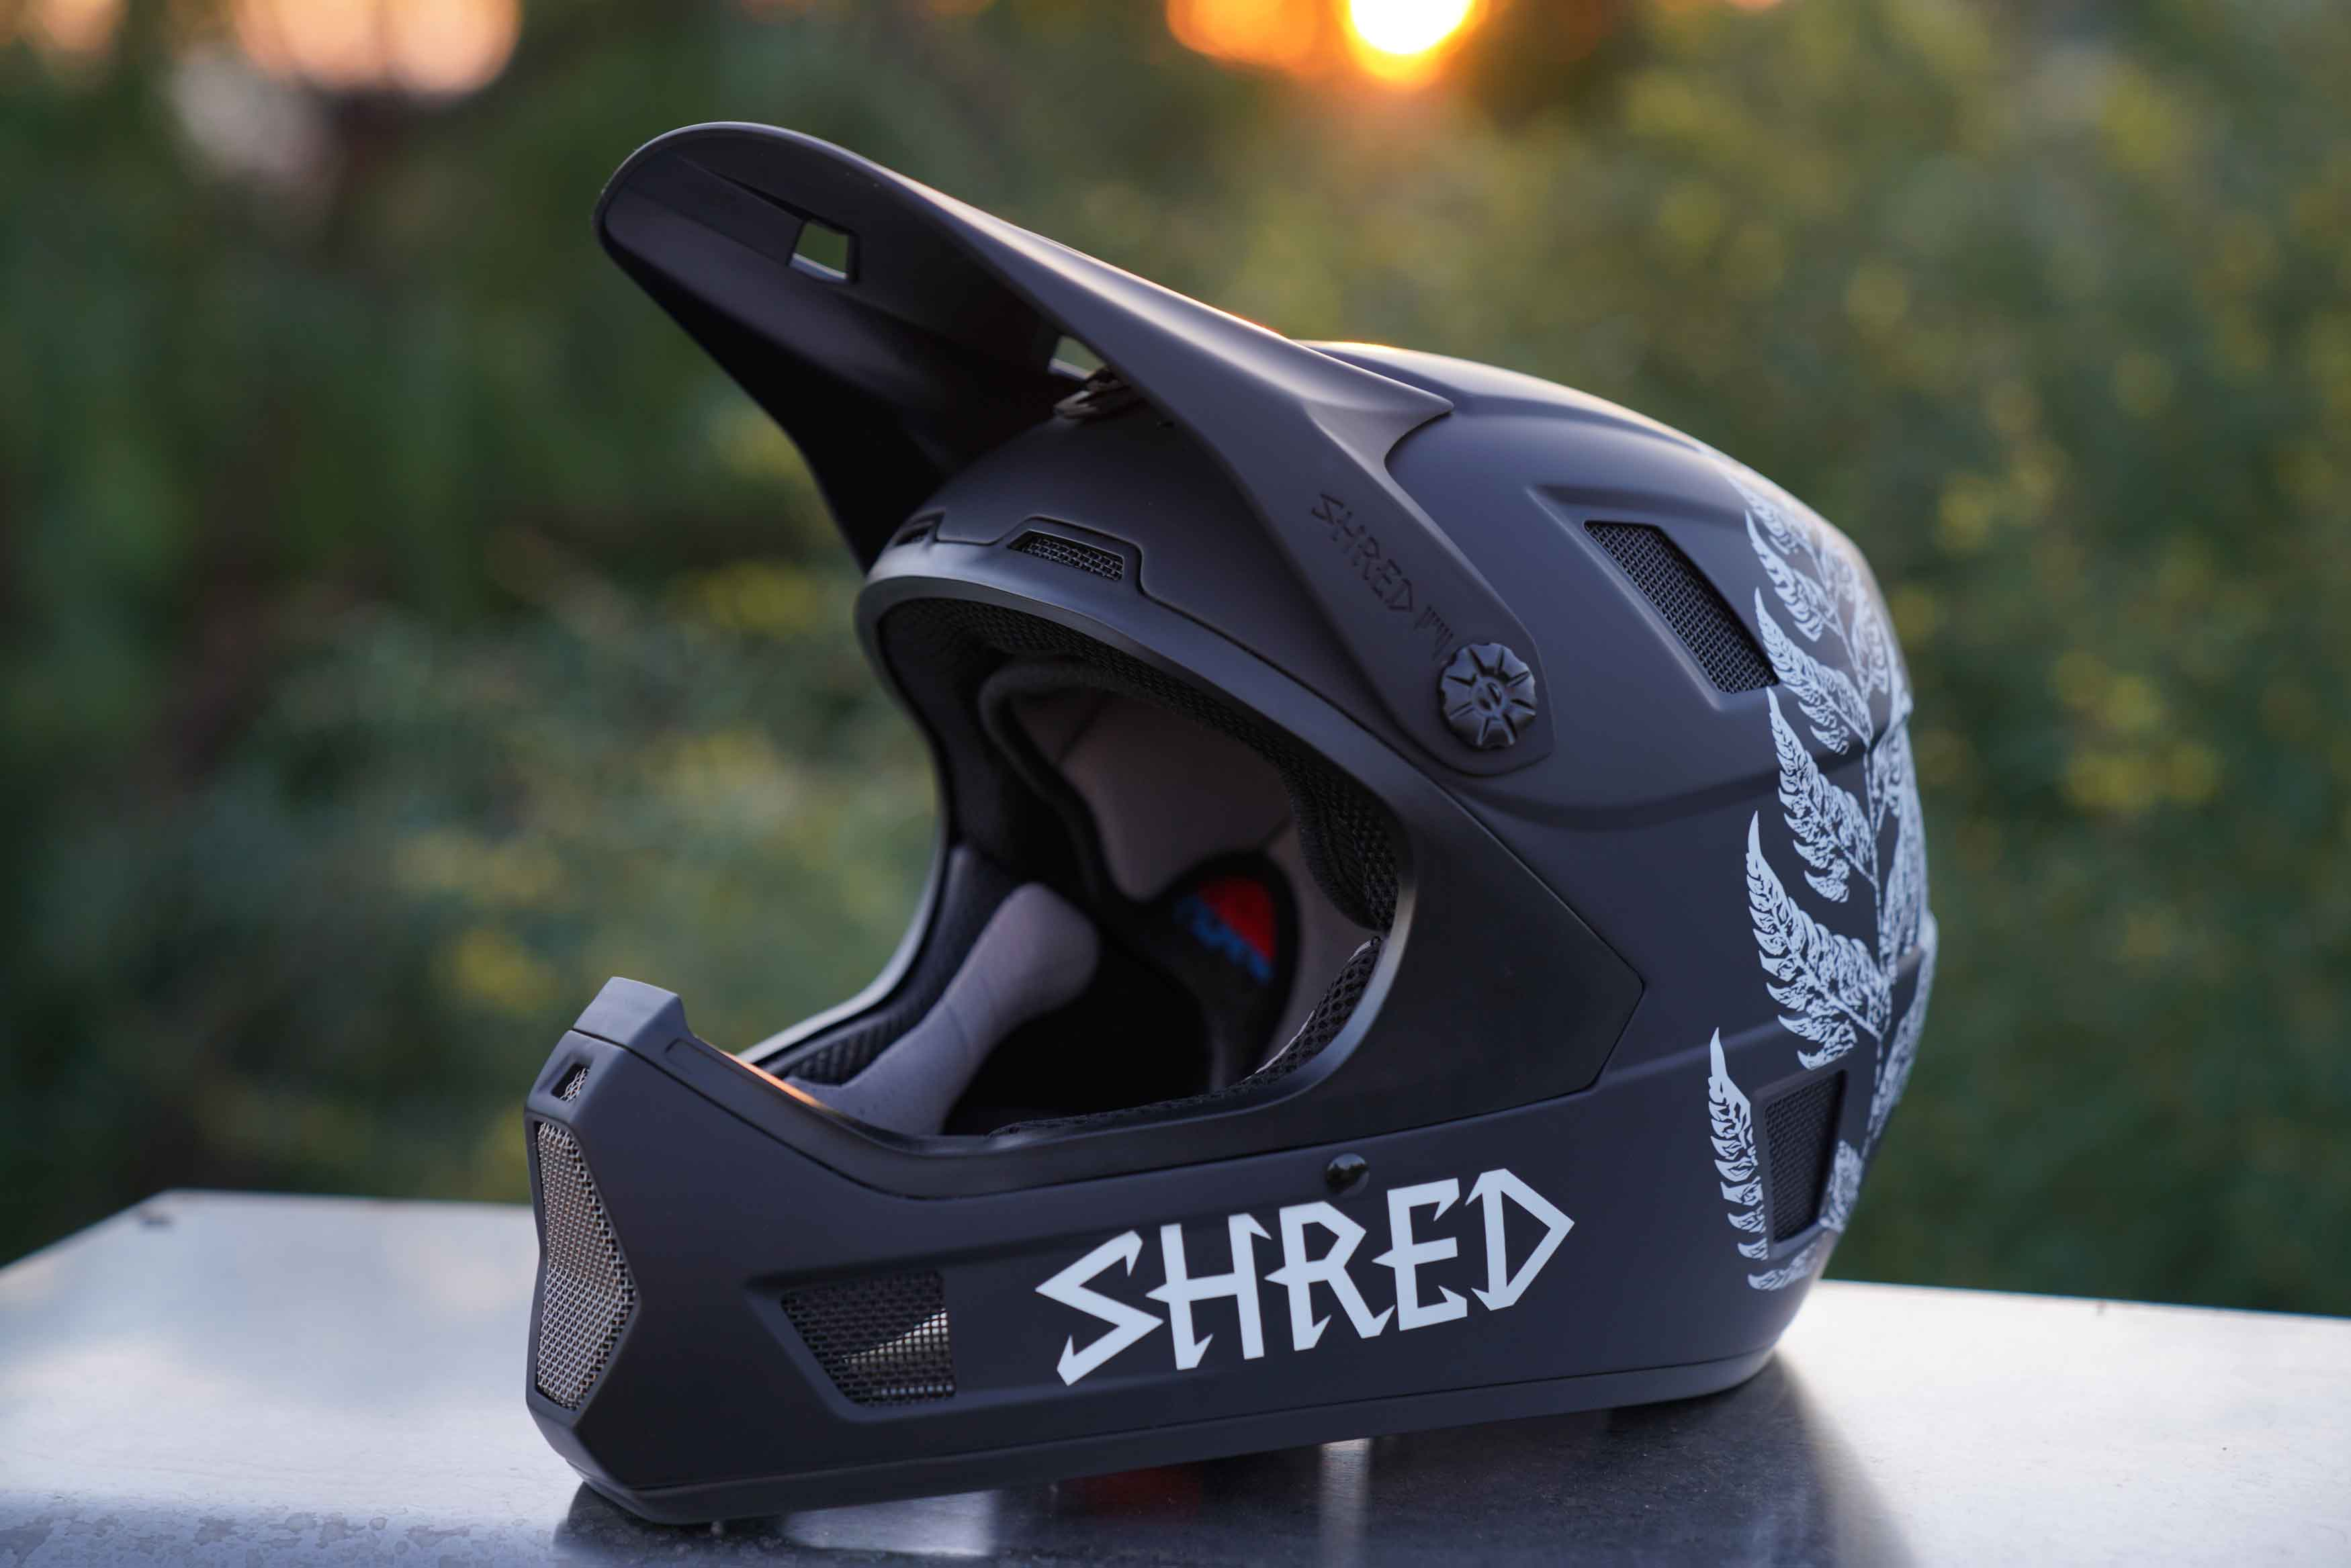 Shred Brain Box - Kelly McGarry Edition - Best Gifts for Mountain Bikers